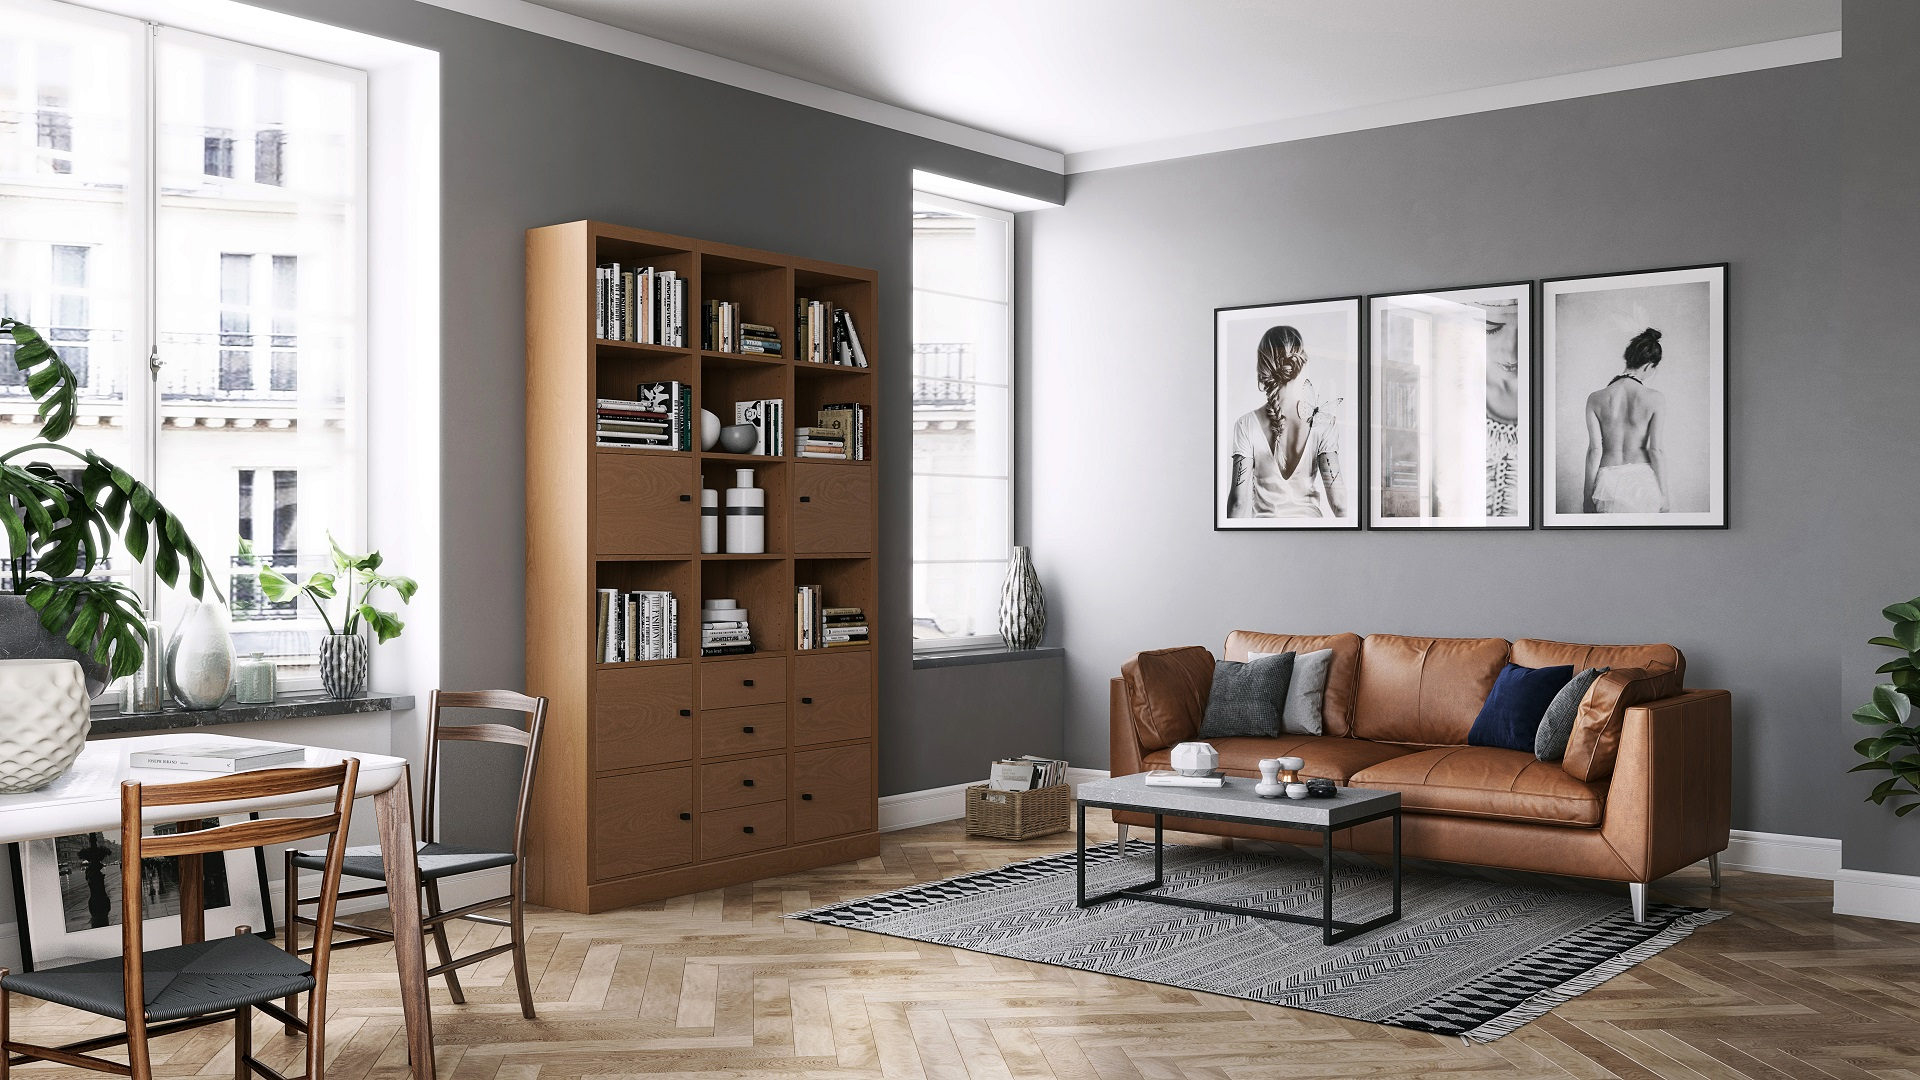 Cherry wooden bookshelf in modern city apartment with Swedish furniture